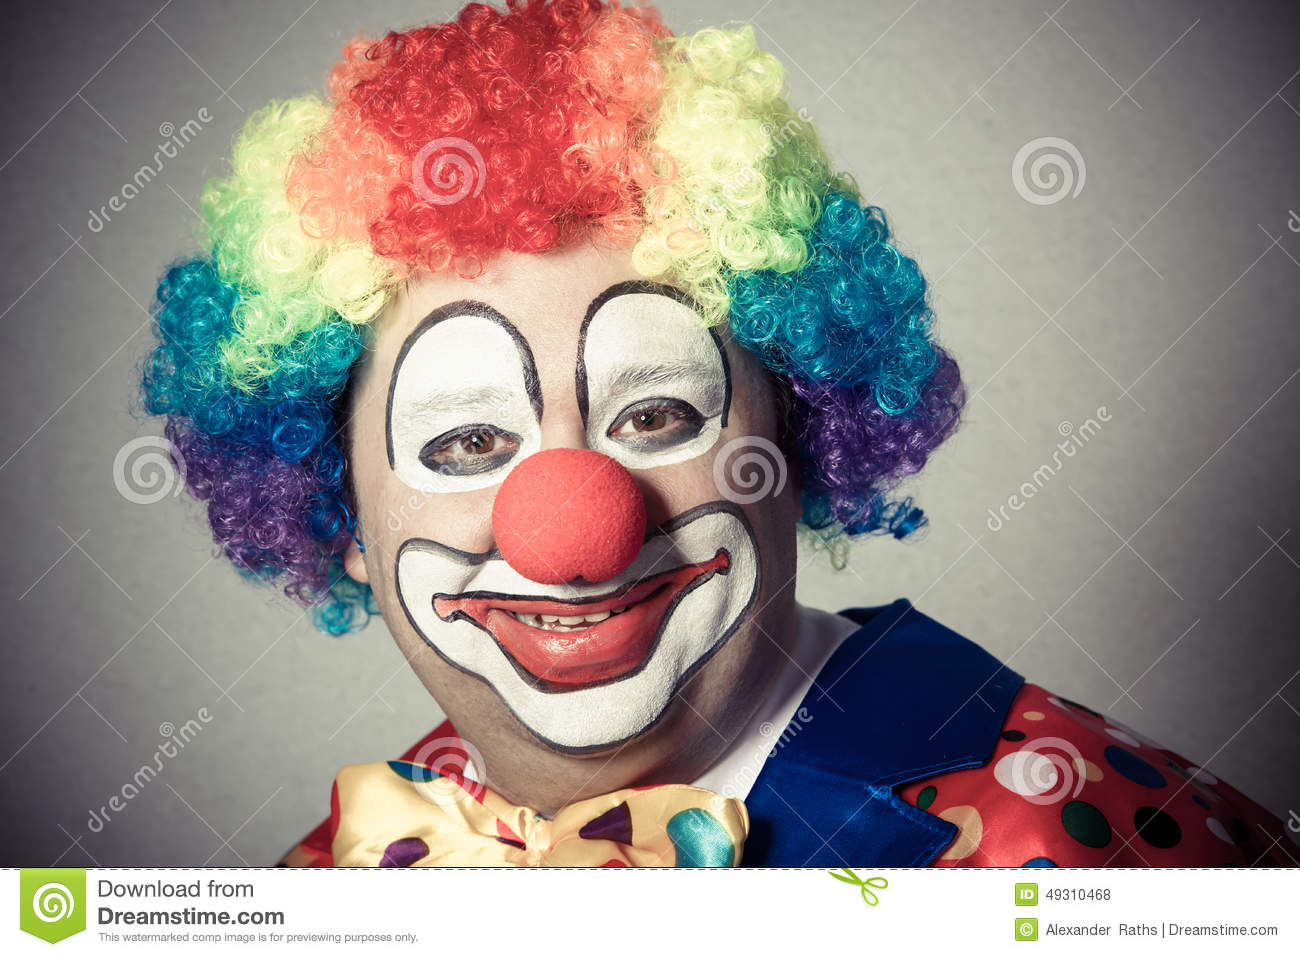 clown-portrait-smiling-49310468.jpg